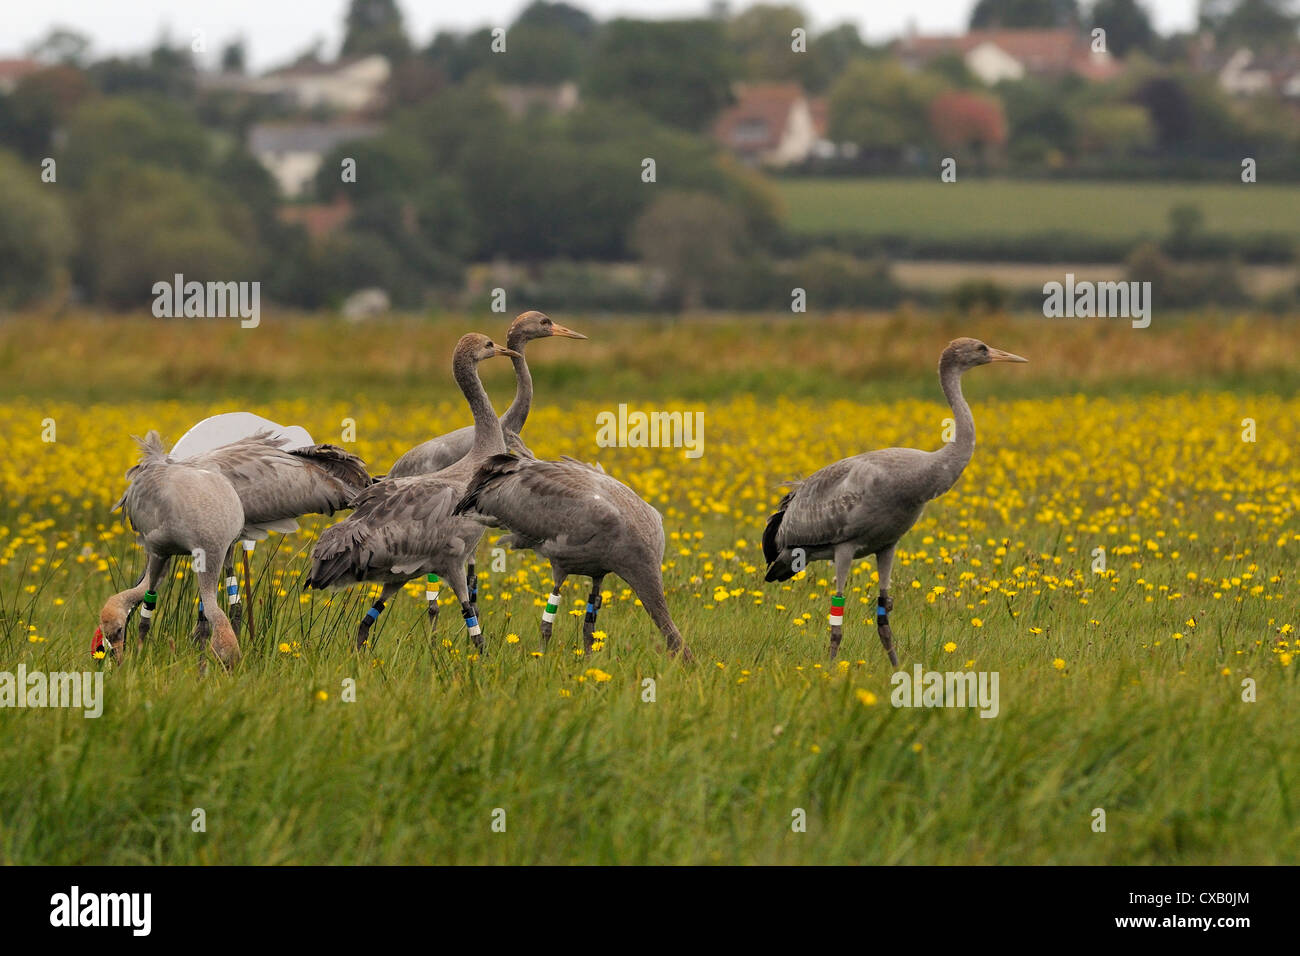 Juvenile Common cranes (Eurasian cranes) (Grus grus) released by the Great Crane Project on the Somerset Levels, - Stock Image